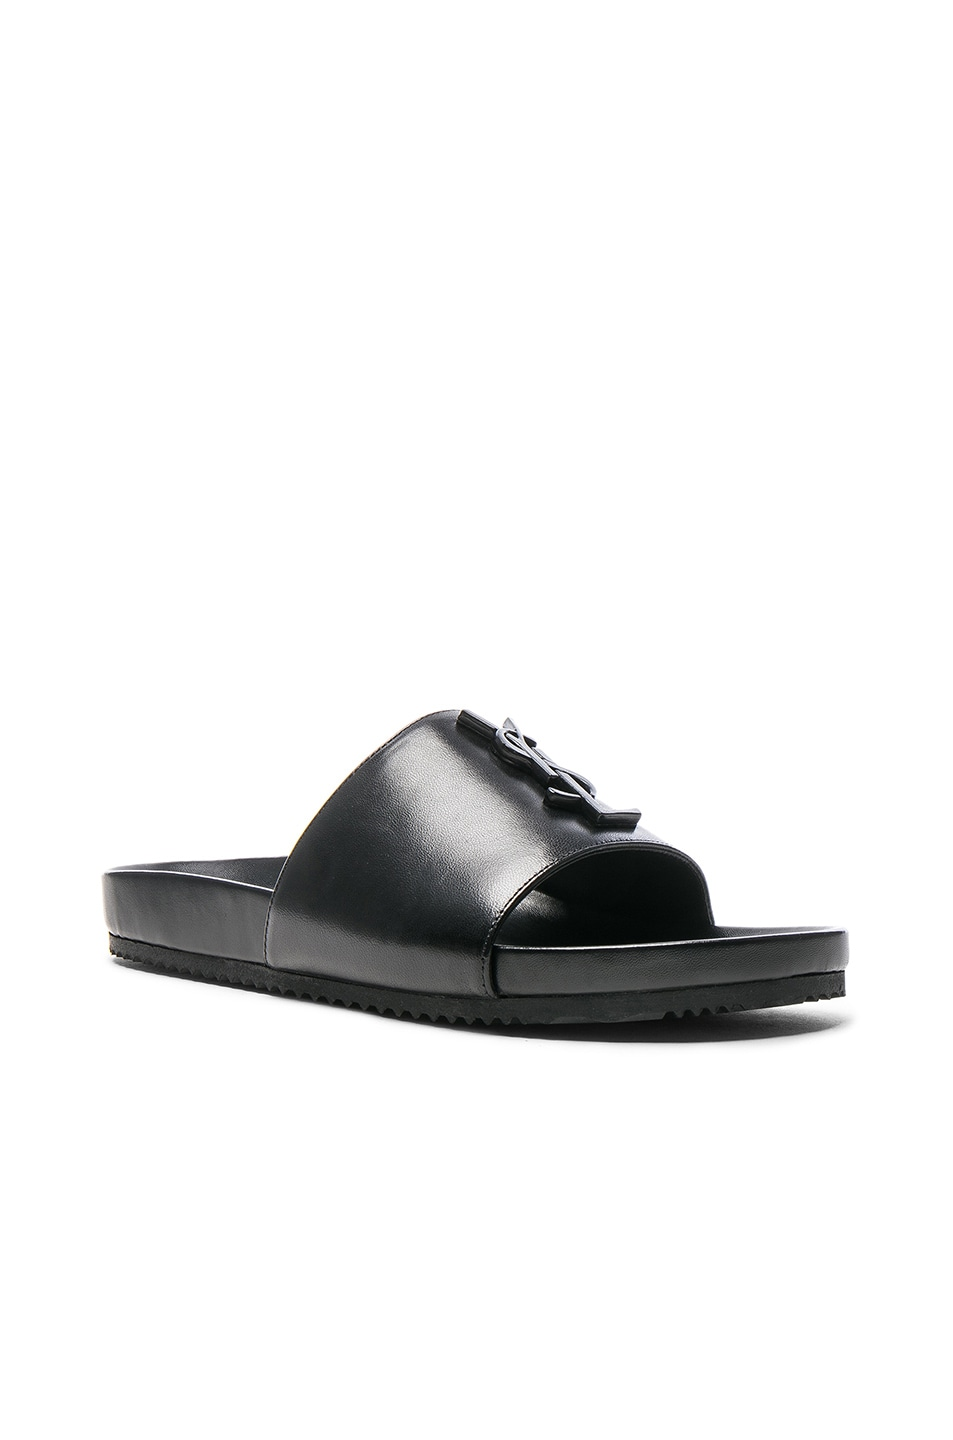 Image 2 of Saint Laurent Joan Leather Slides in Black